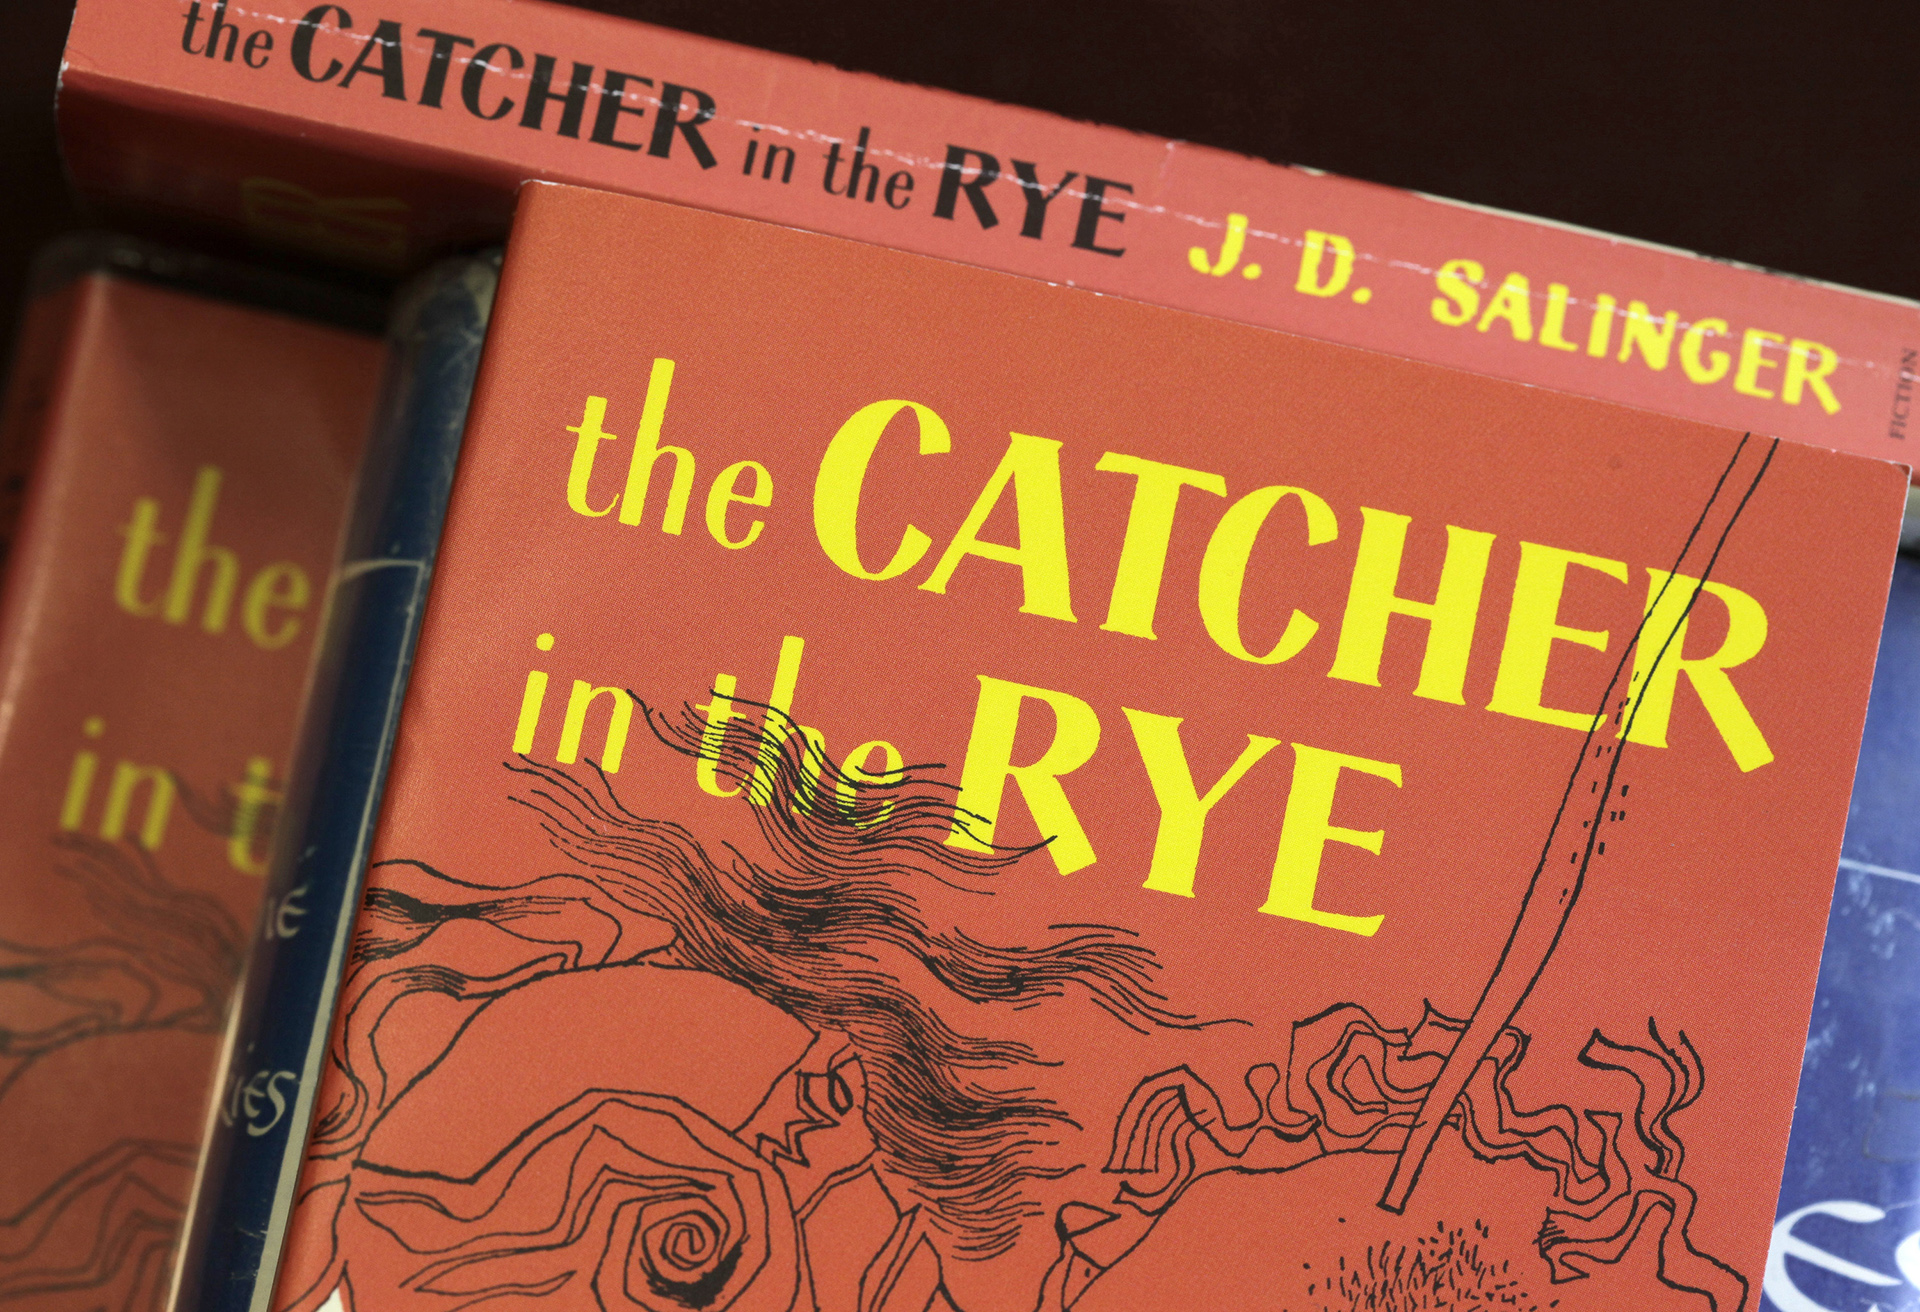 Frontispiece of J. D. Salinger's The Catcher in the Rye (1951)